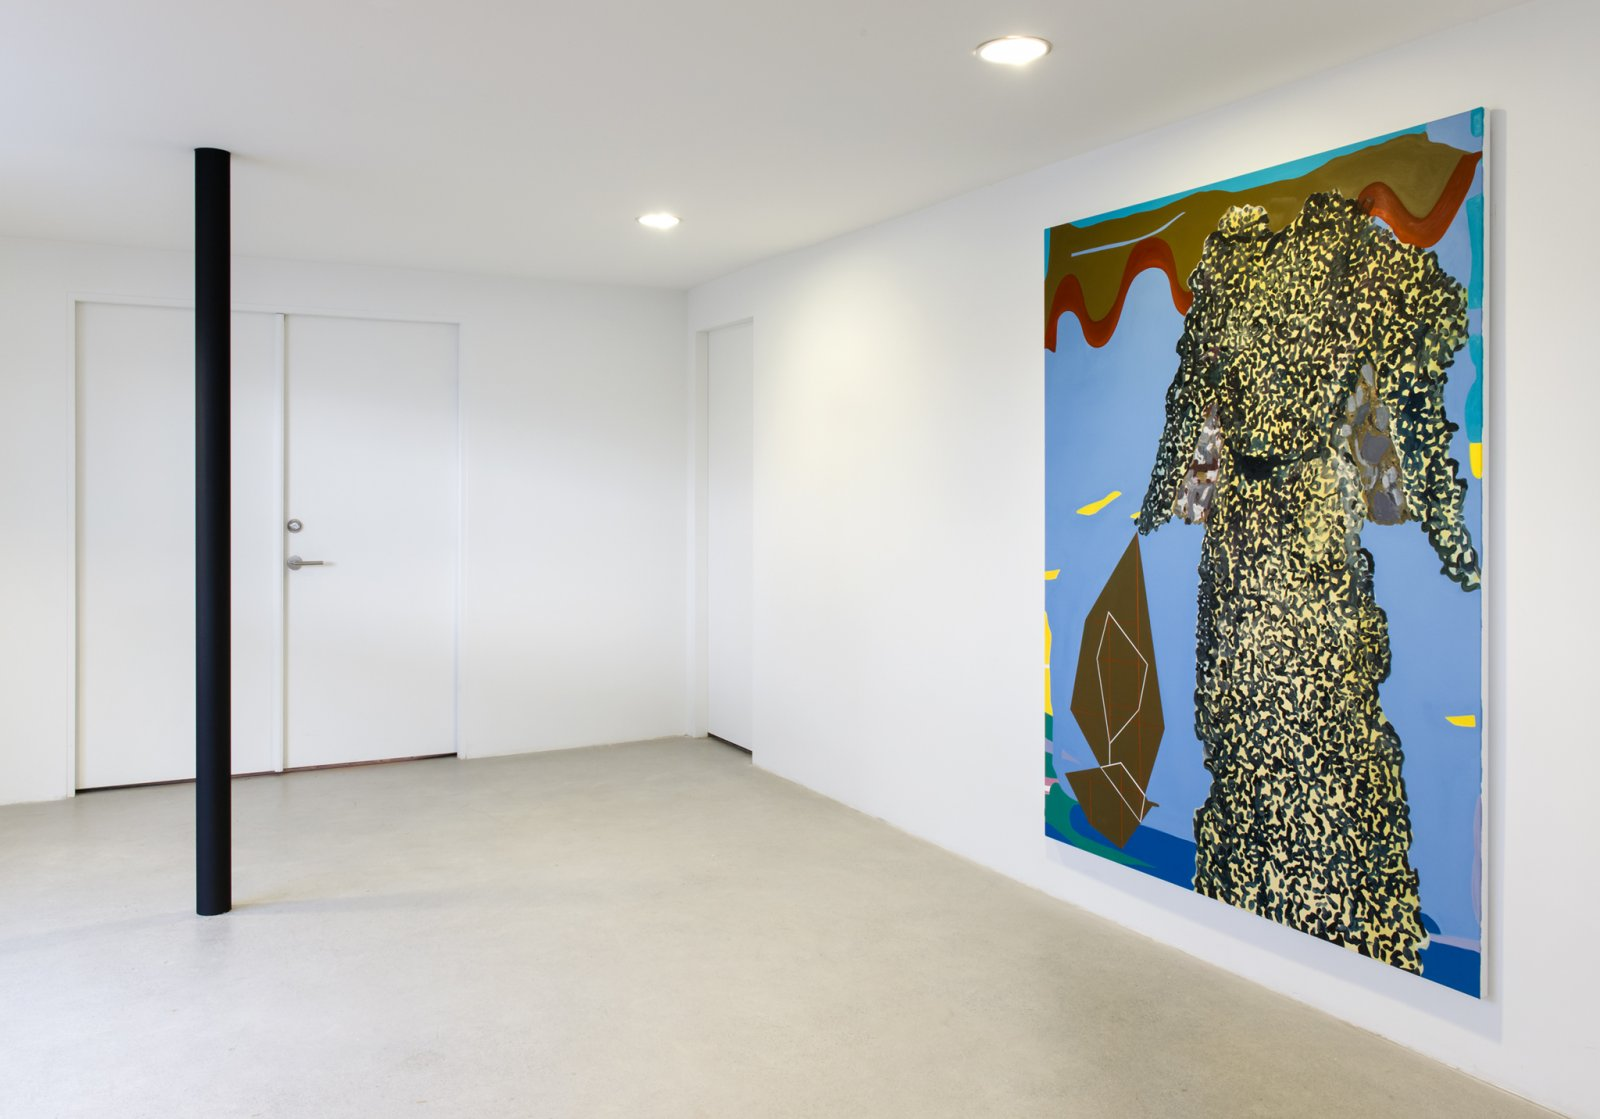 Elizabeth McIntosh, installation view, ISLANDS, Catriona Jeffries, Vancouver, 2017 by Elizabeth McIntosh